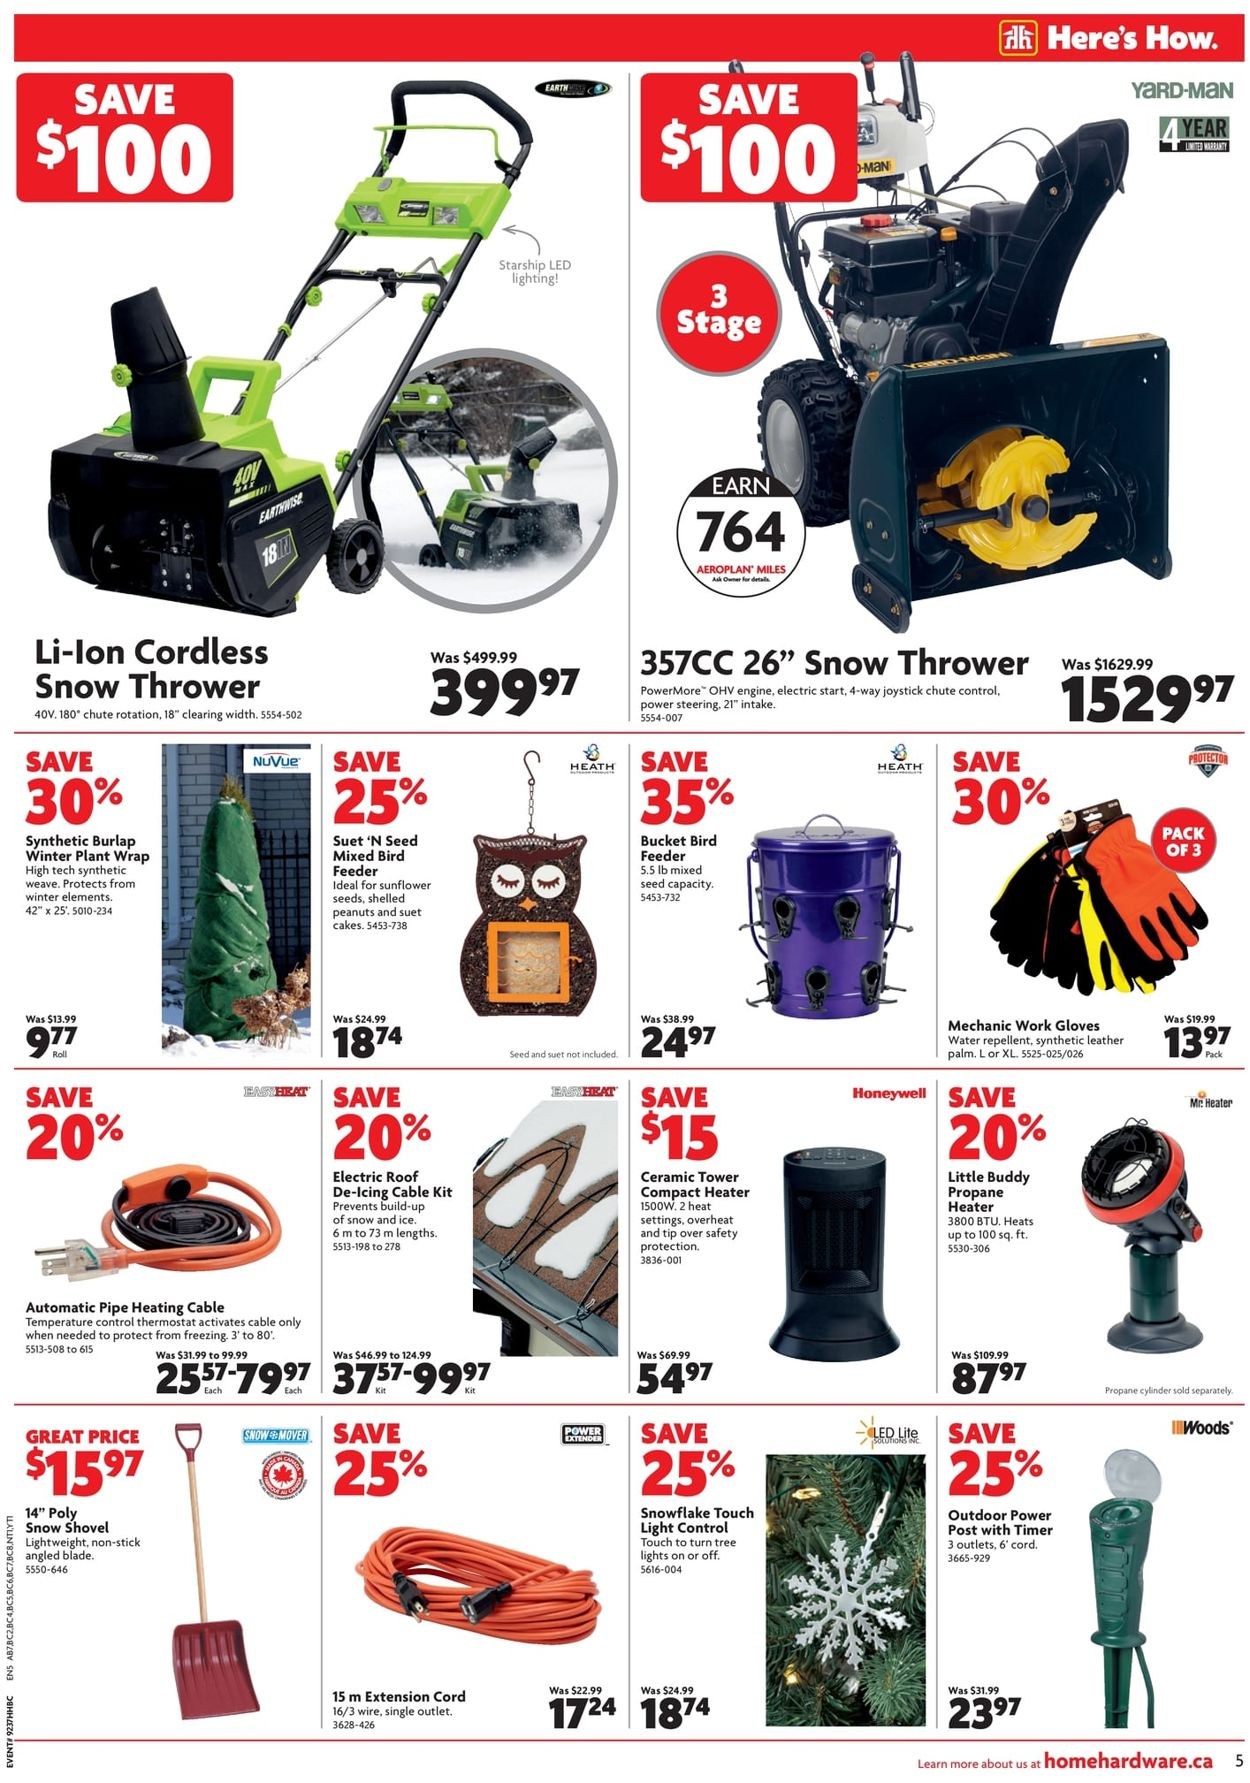 Home Hardware - Winter 2019 Savings Flyer - 11/14-11/20/2019 (Page 6)